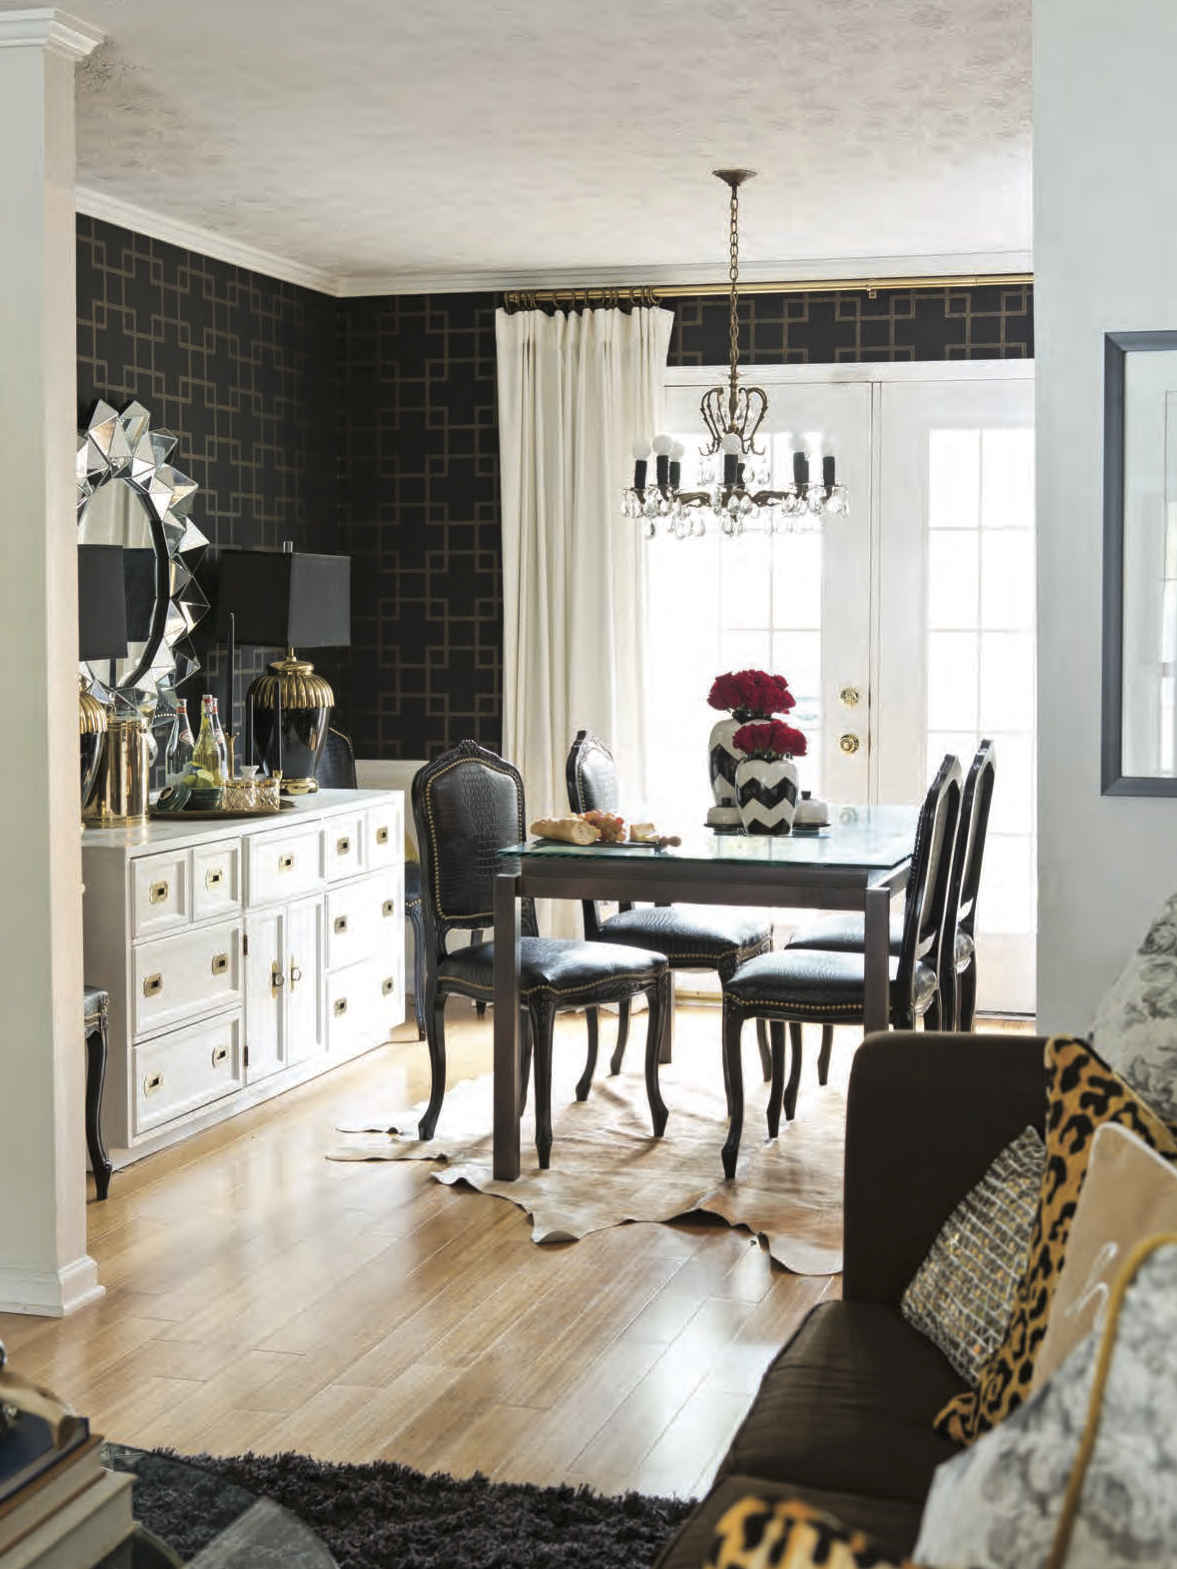 Dayka Robinson Designs Home Tour Southern Lady Southern Home magazine 2015-7